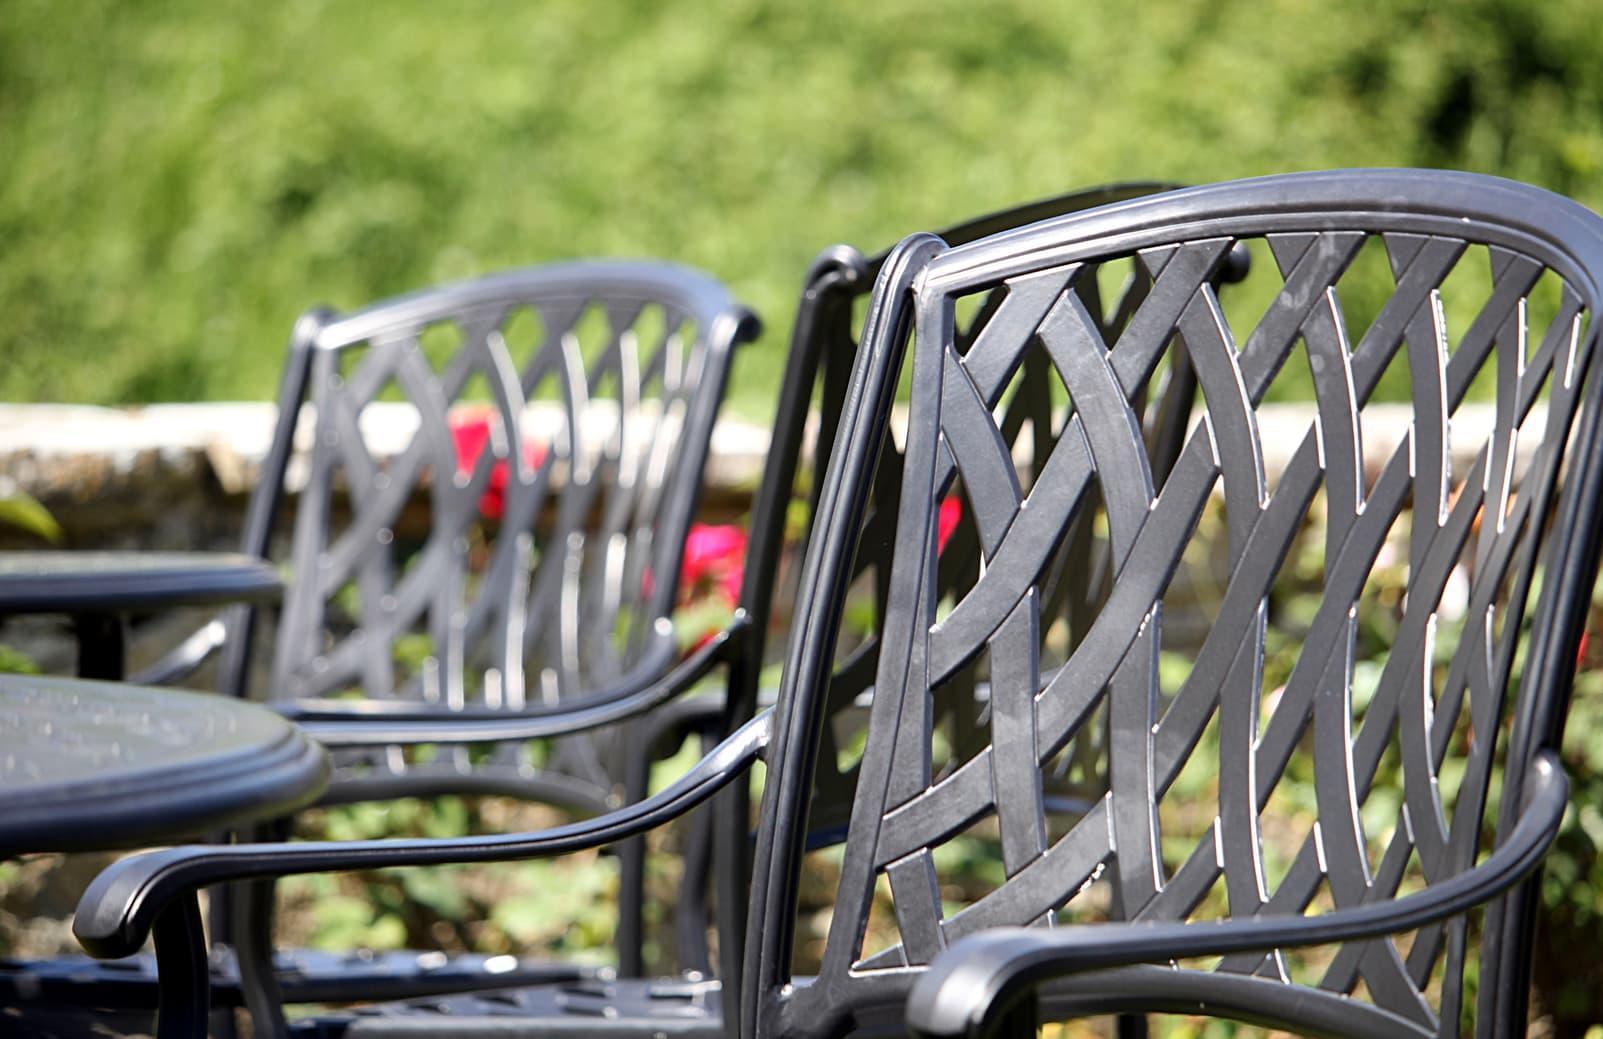 Wrought Iron outdoor chairs